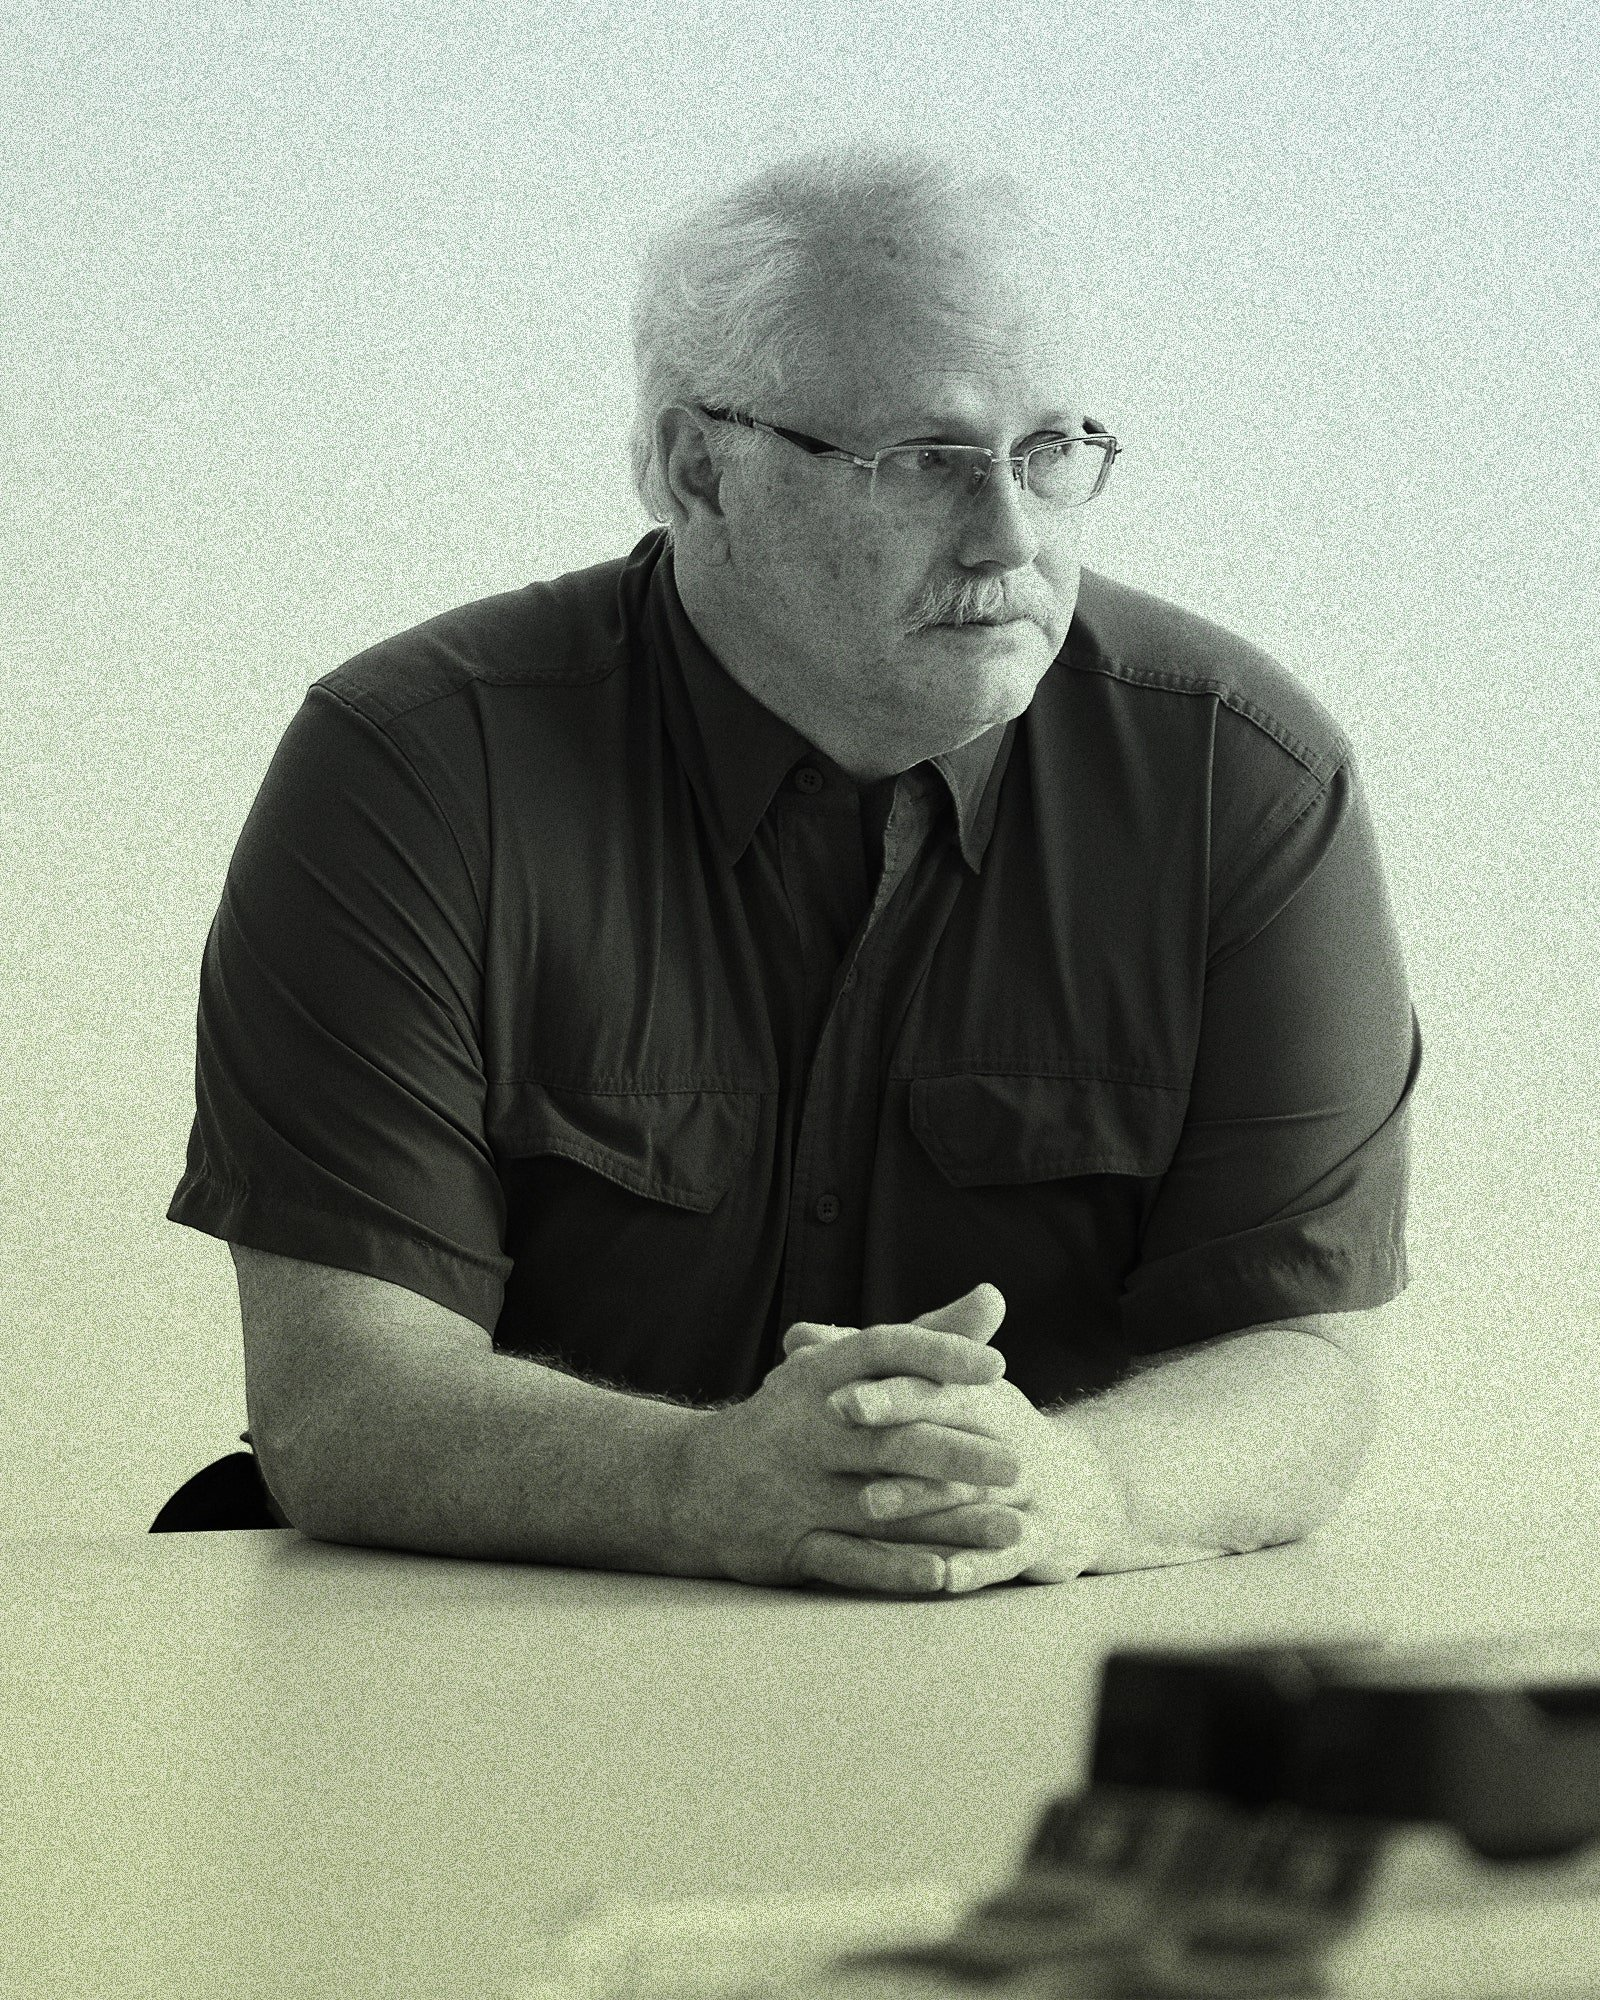 University of North Carolina virologist Ralph Baric collaborated with Shi Zhengli on a gain-of-function coronavirus experiment in 2015. In February 2020, he privately expressed support for Peter Daszak's Lancet statement dismissing the lab-leak theory. More recently, he signed a letter calling for a transparent investigation of all hypotheses.By Christopher Janaro/Bloomberg/Getty Images.